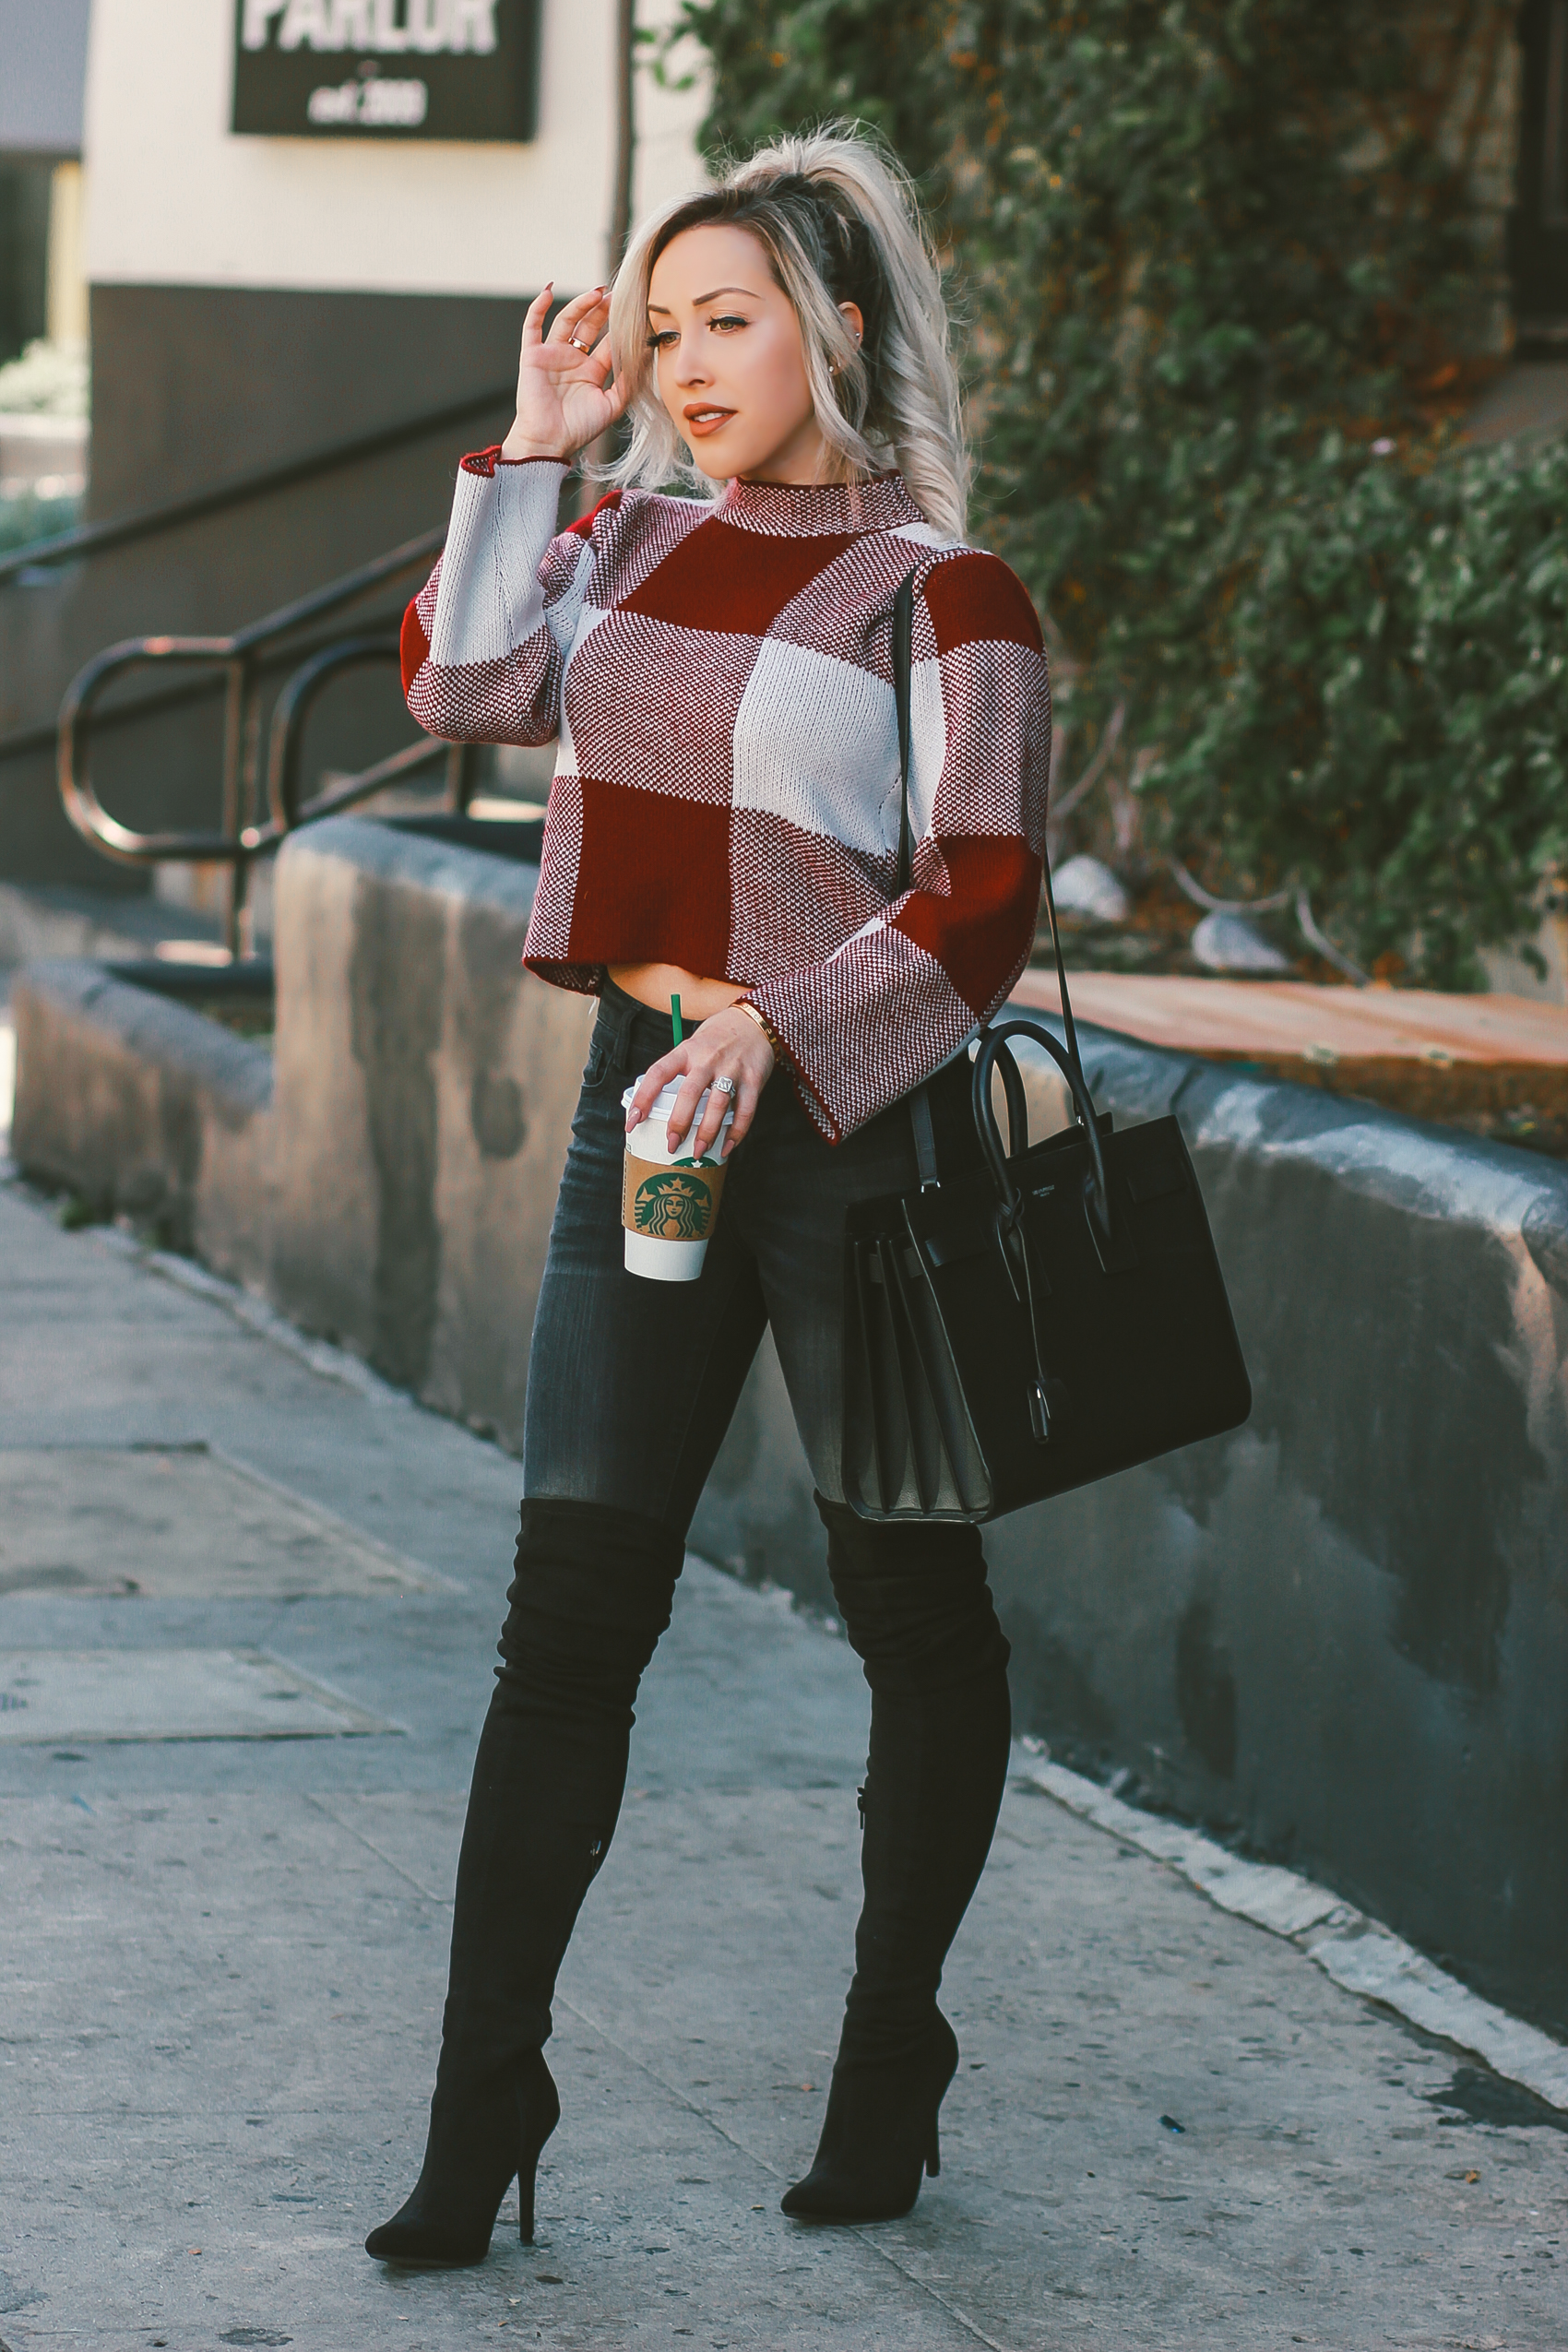 Gingham Cropped Sweater  Black Thigh High Boots, Black Saint Laurent Sac De Jour   Blondie in the City by Hayley Larue